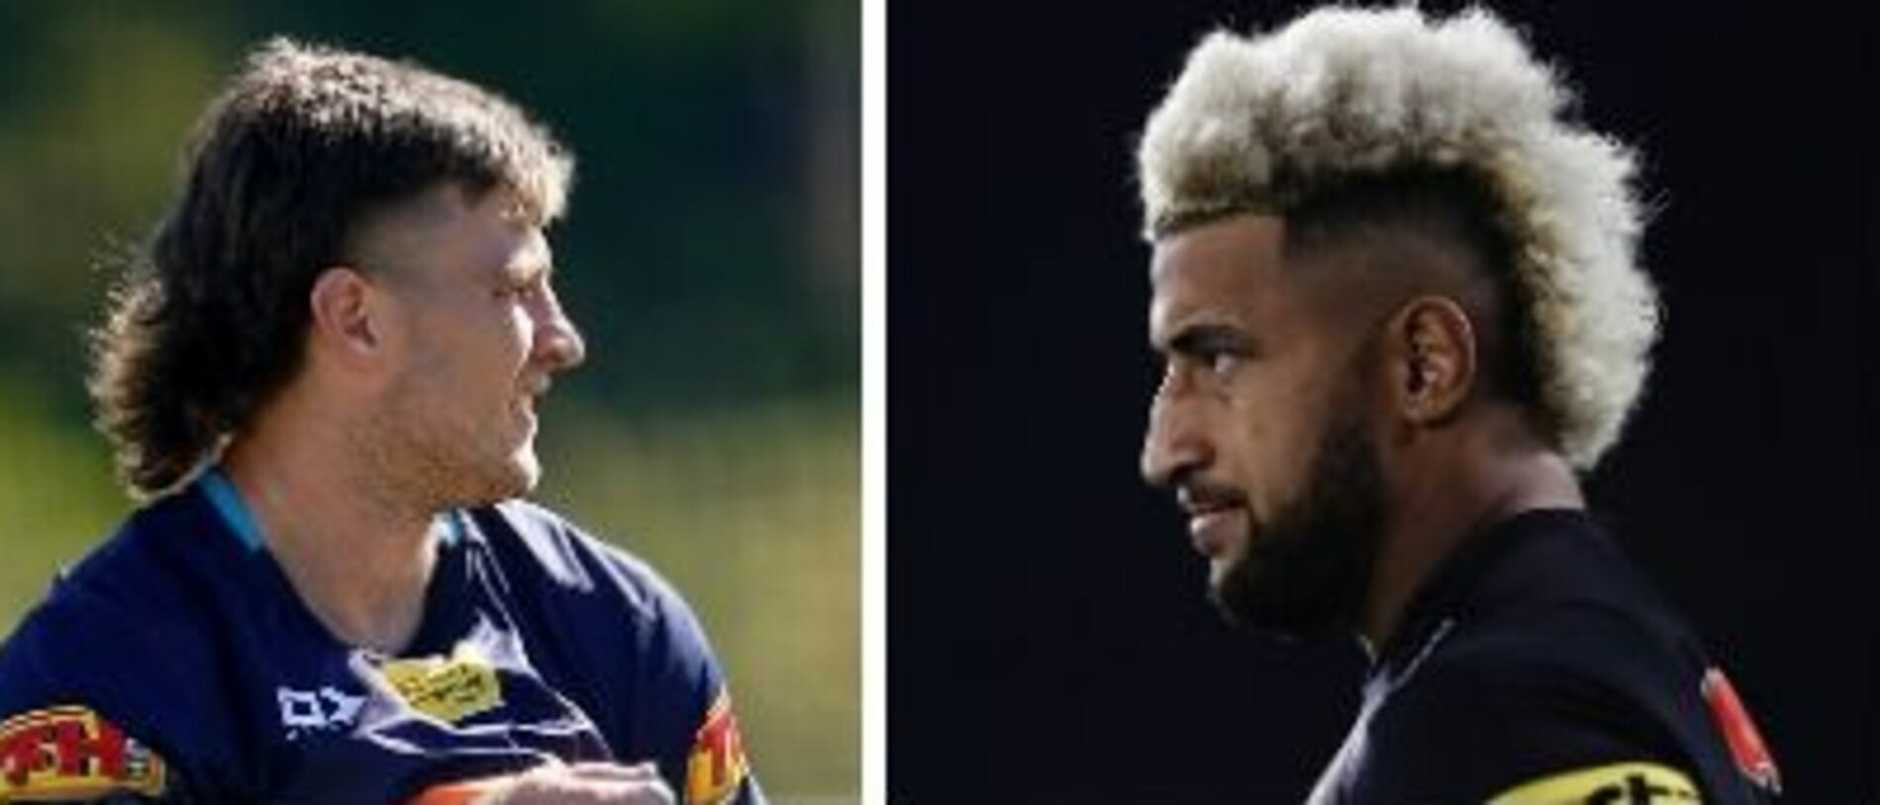 From fades of glory to full Tiger King mullets and far too much bleach, it's been hard not to get distracted by NRL player's hairstyles post-lockdown.